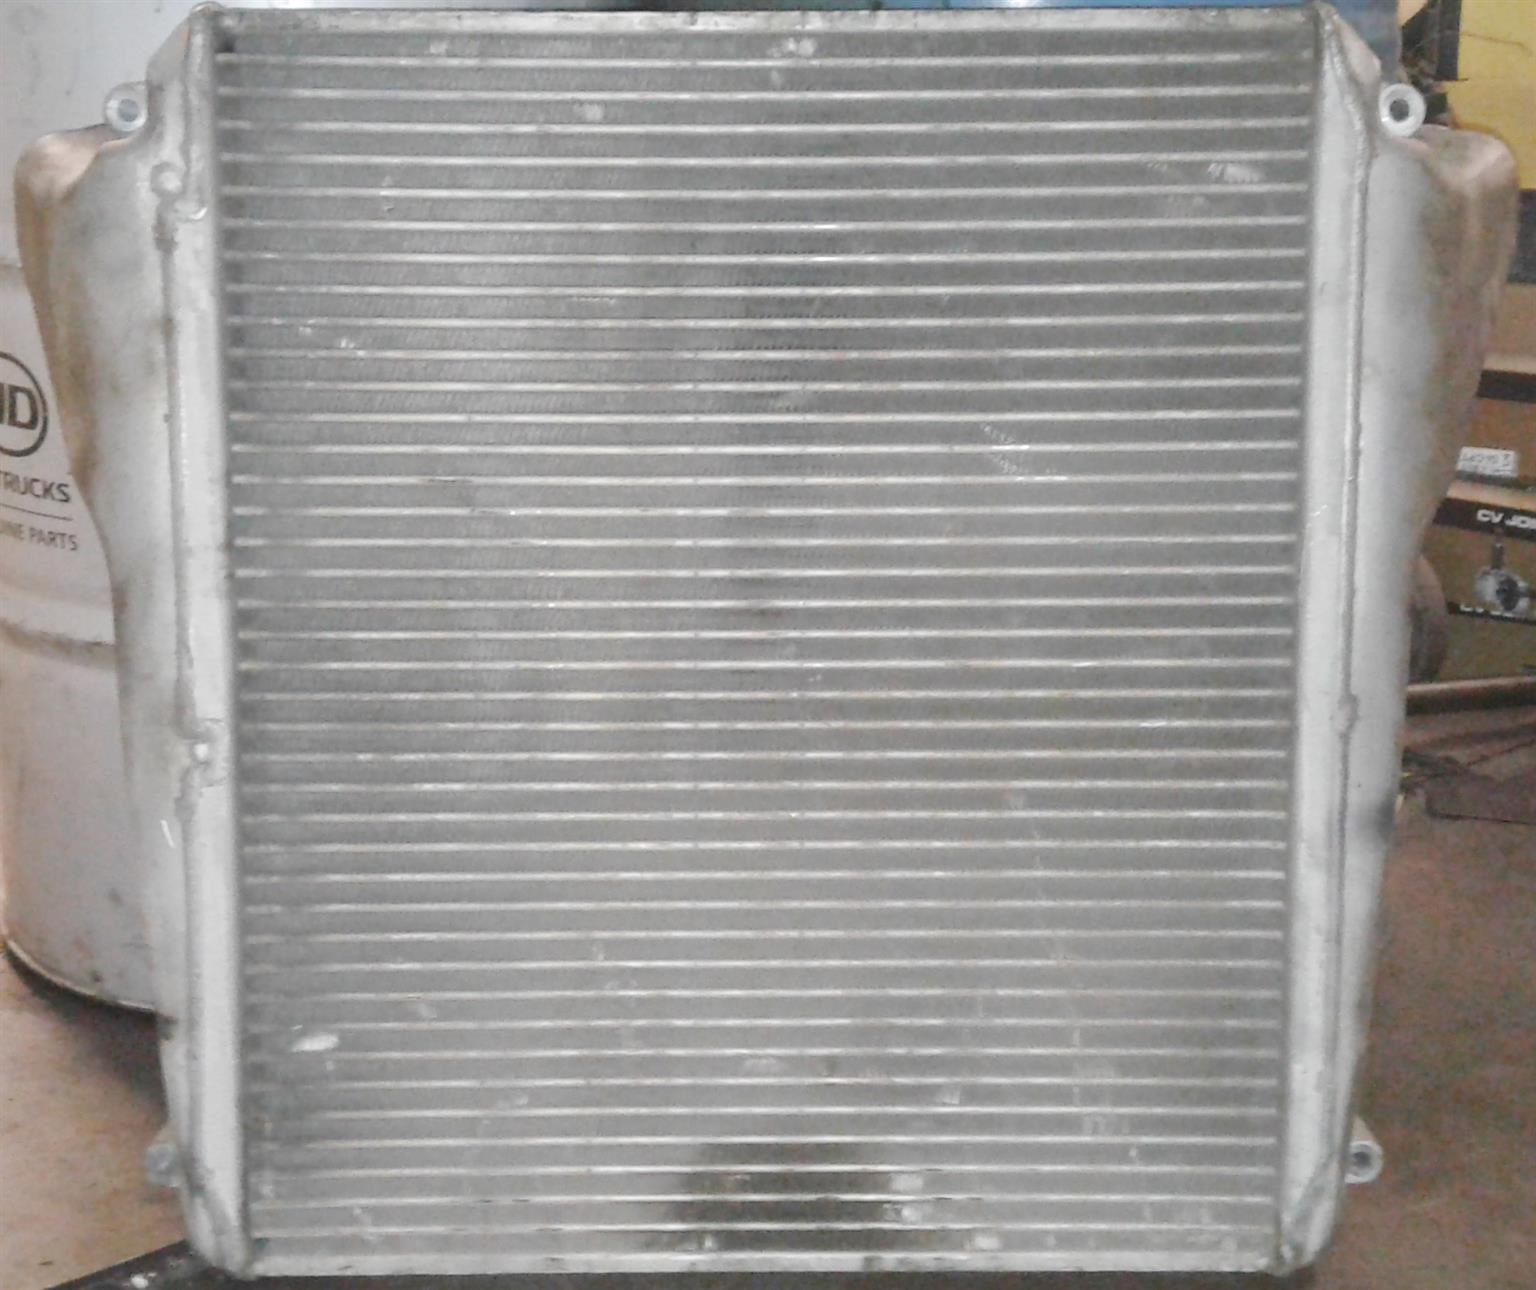 TRUCK INTERCOOLER